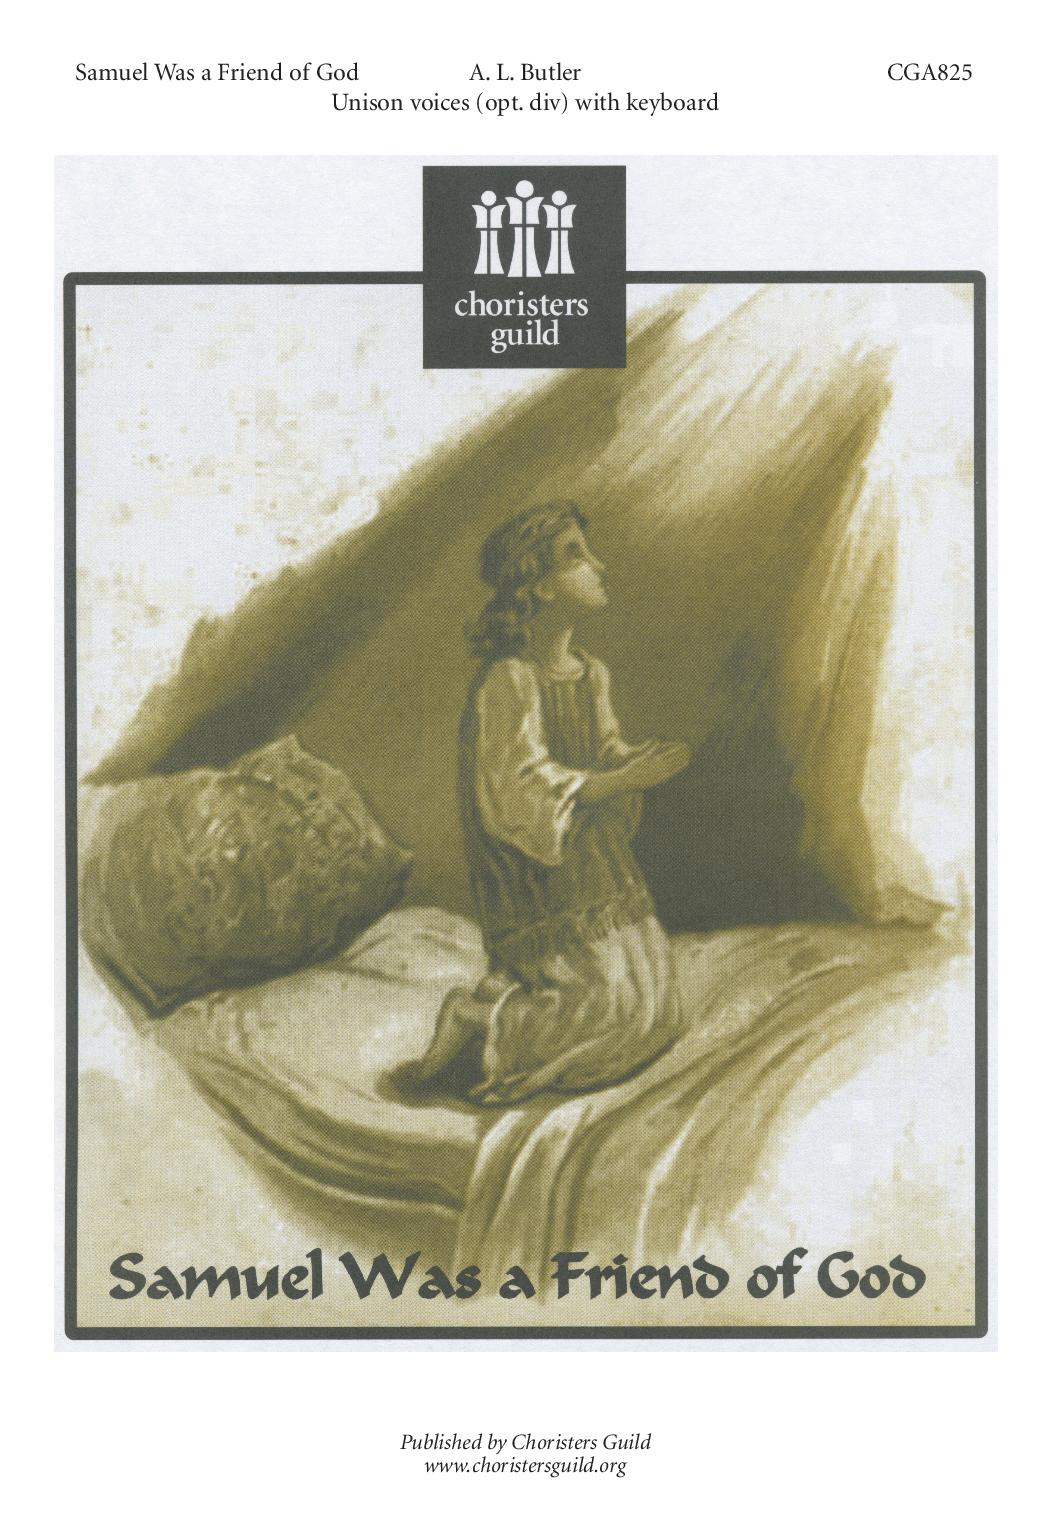 Samuel Was a Friend of God